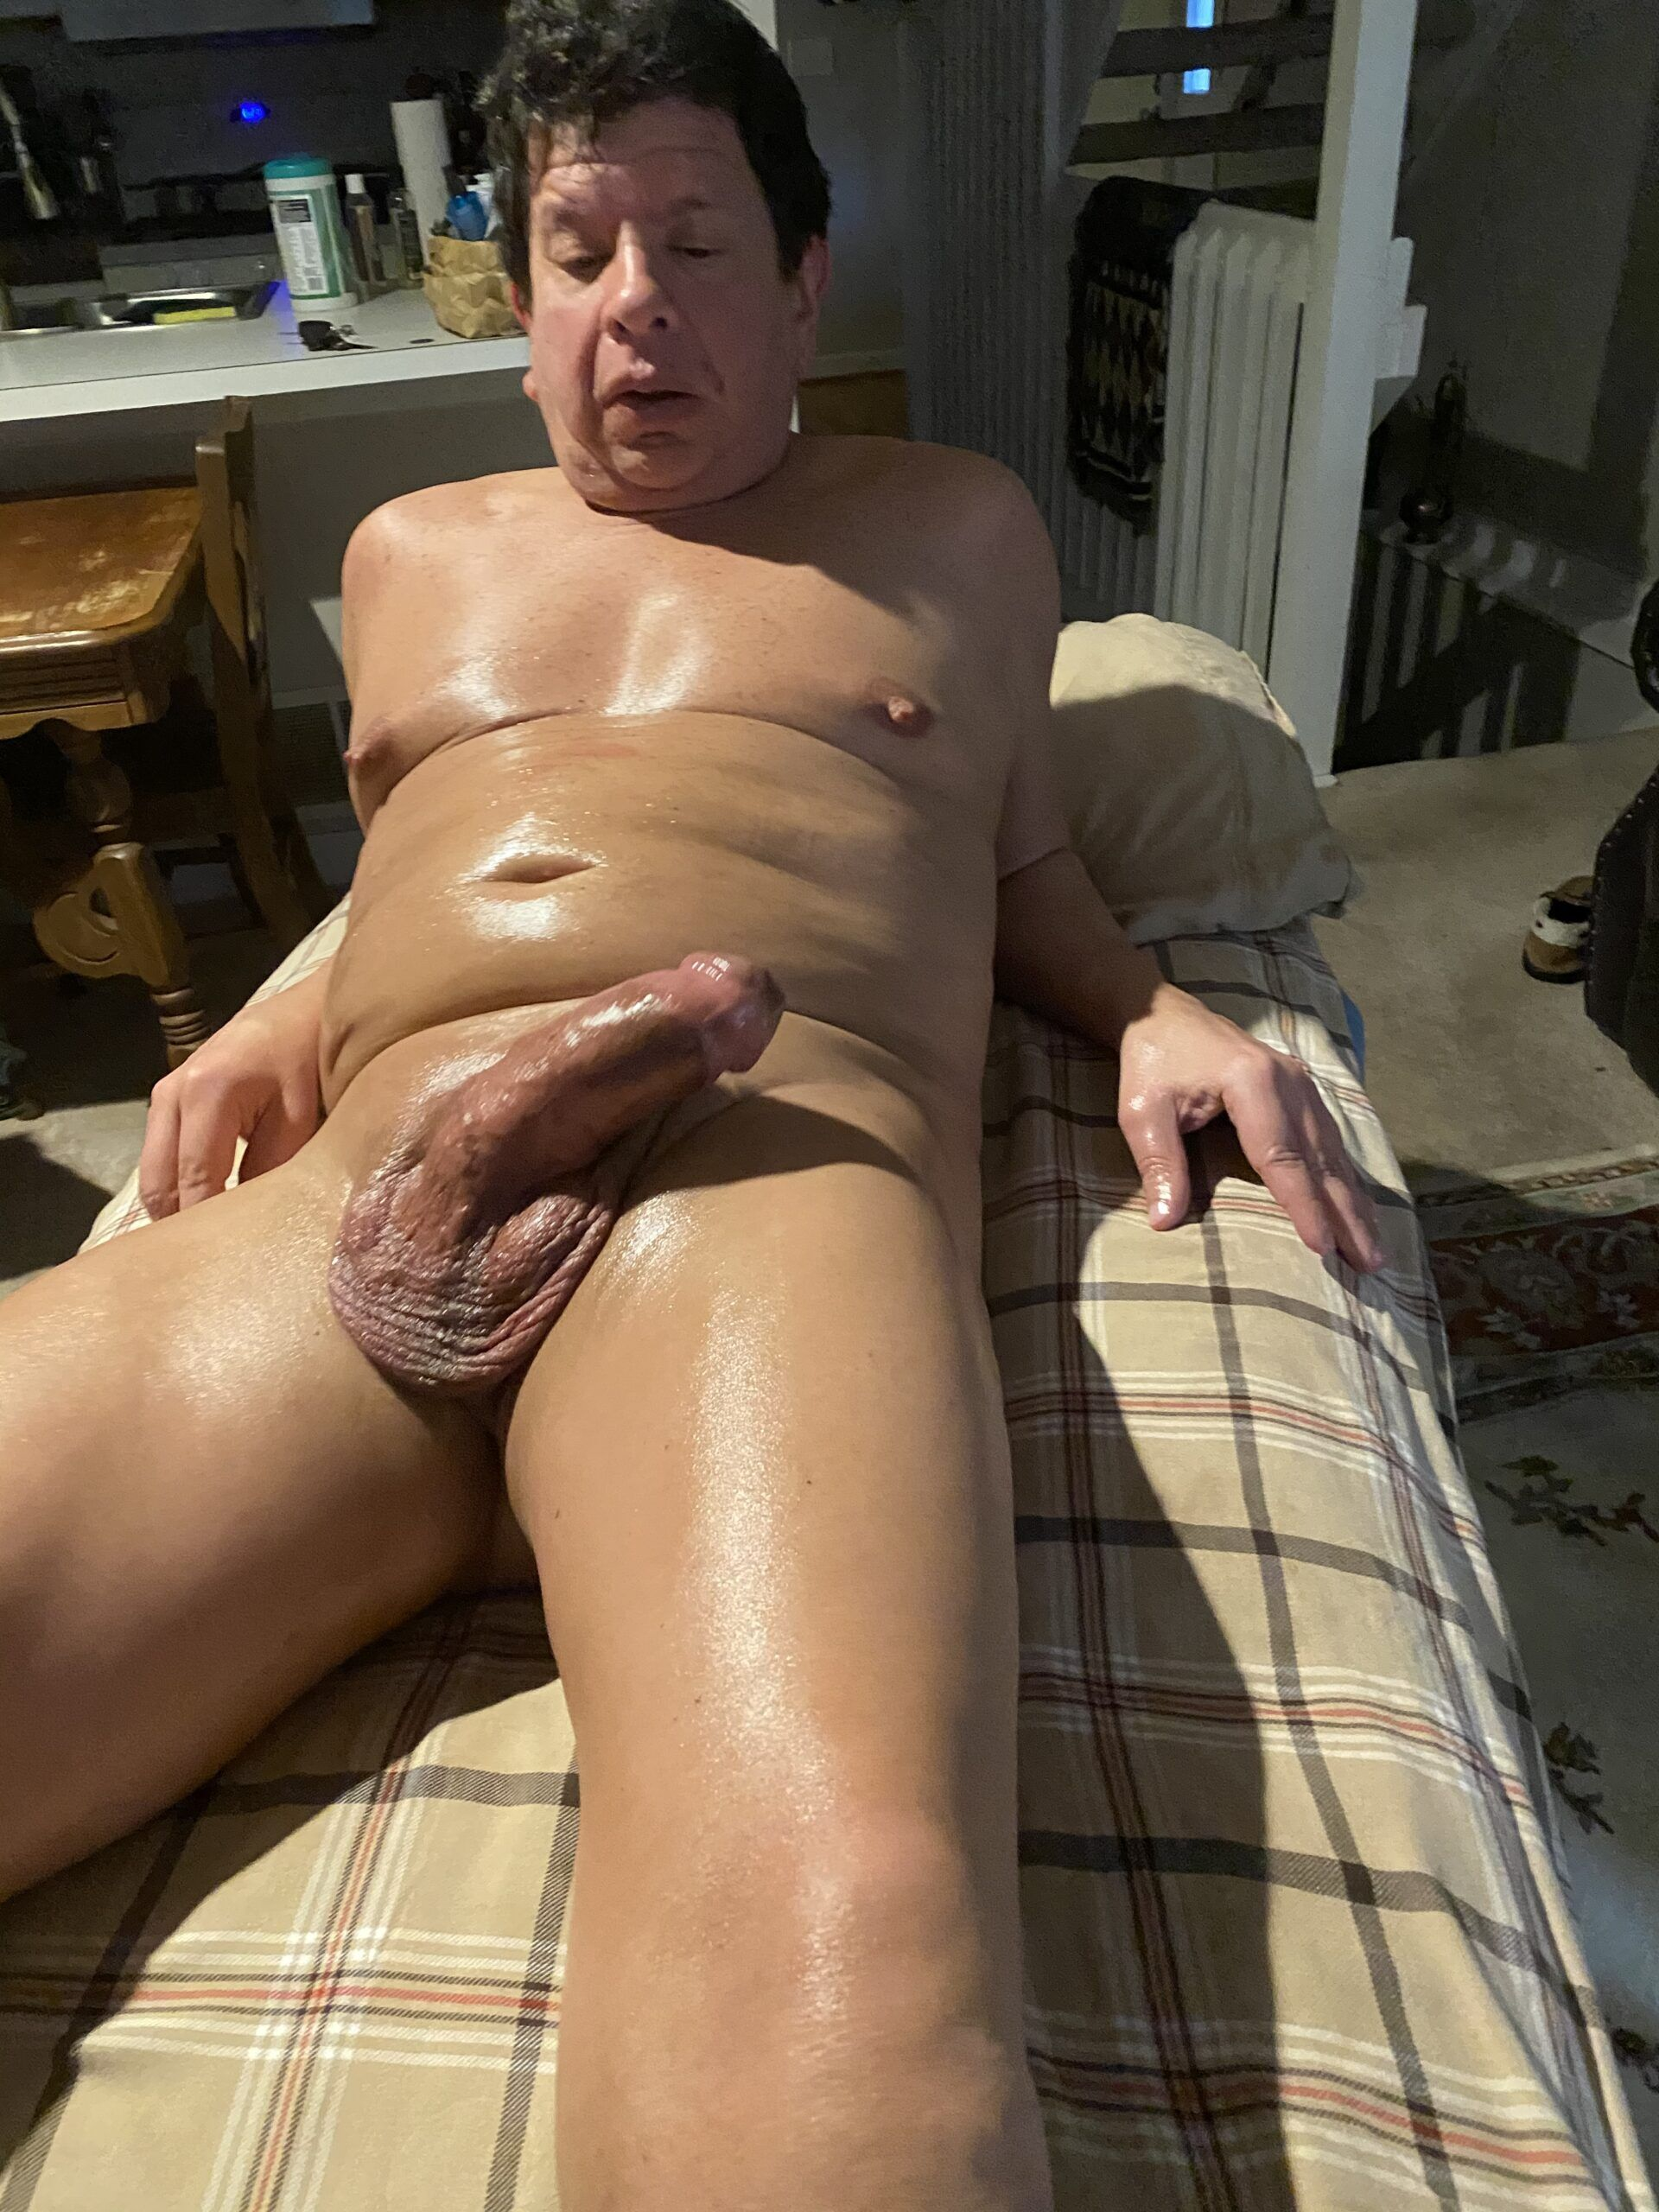 Massage day real nudity dick flash